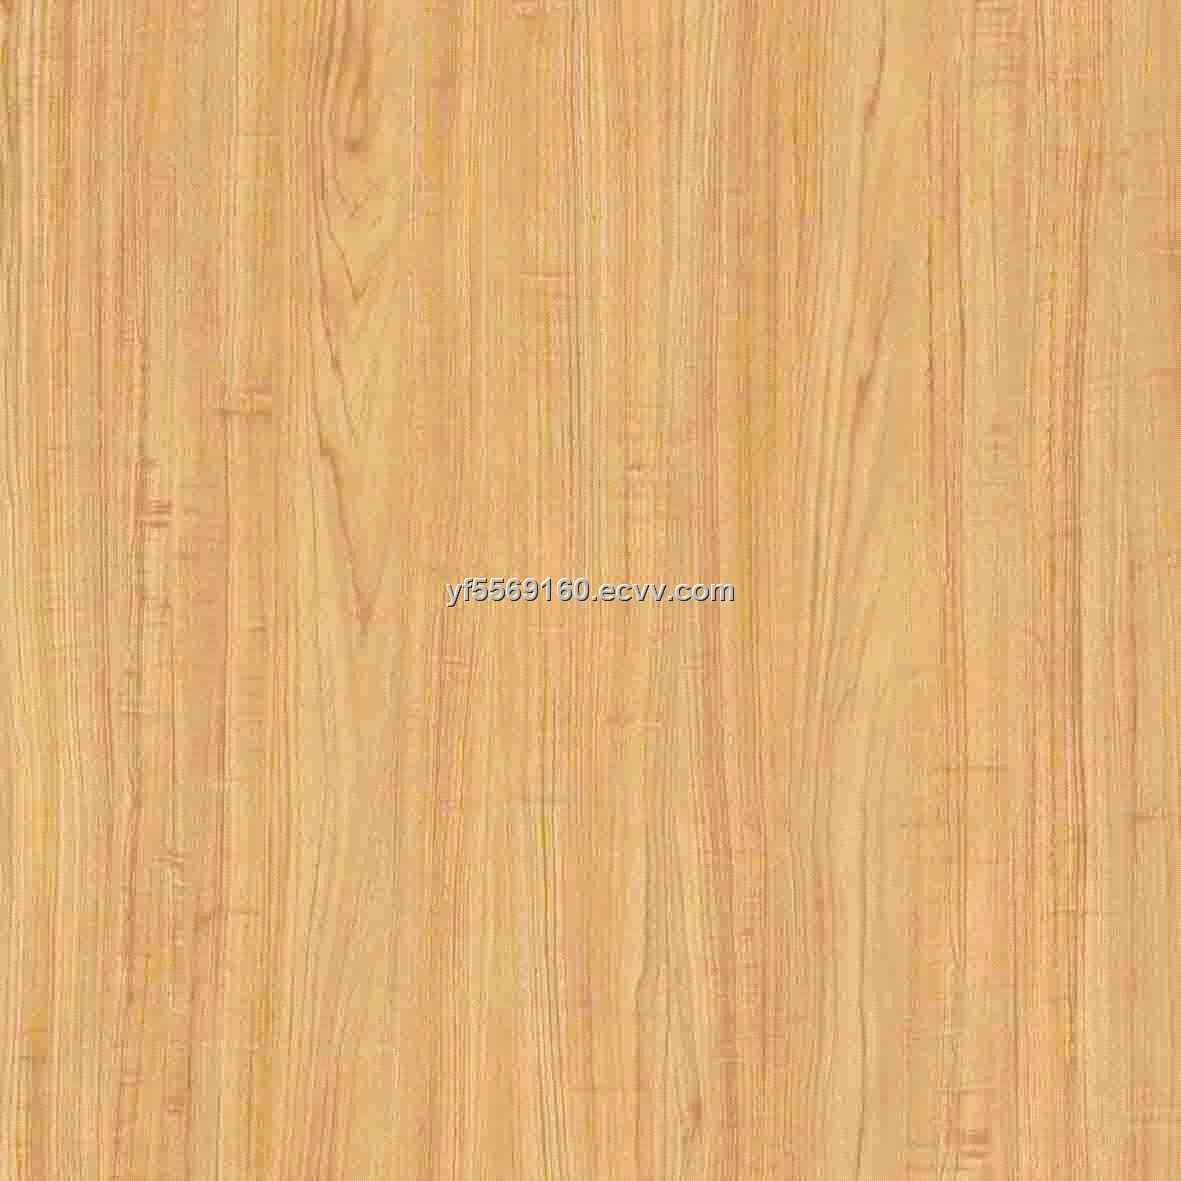 PVC Flooring purchasing, souring agent | ECVV.com purchasing service ...